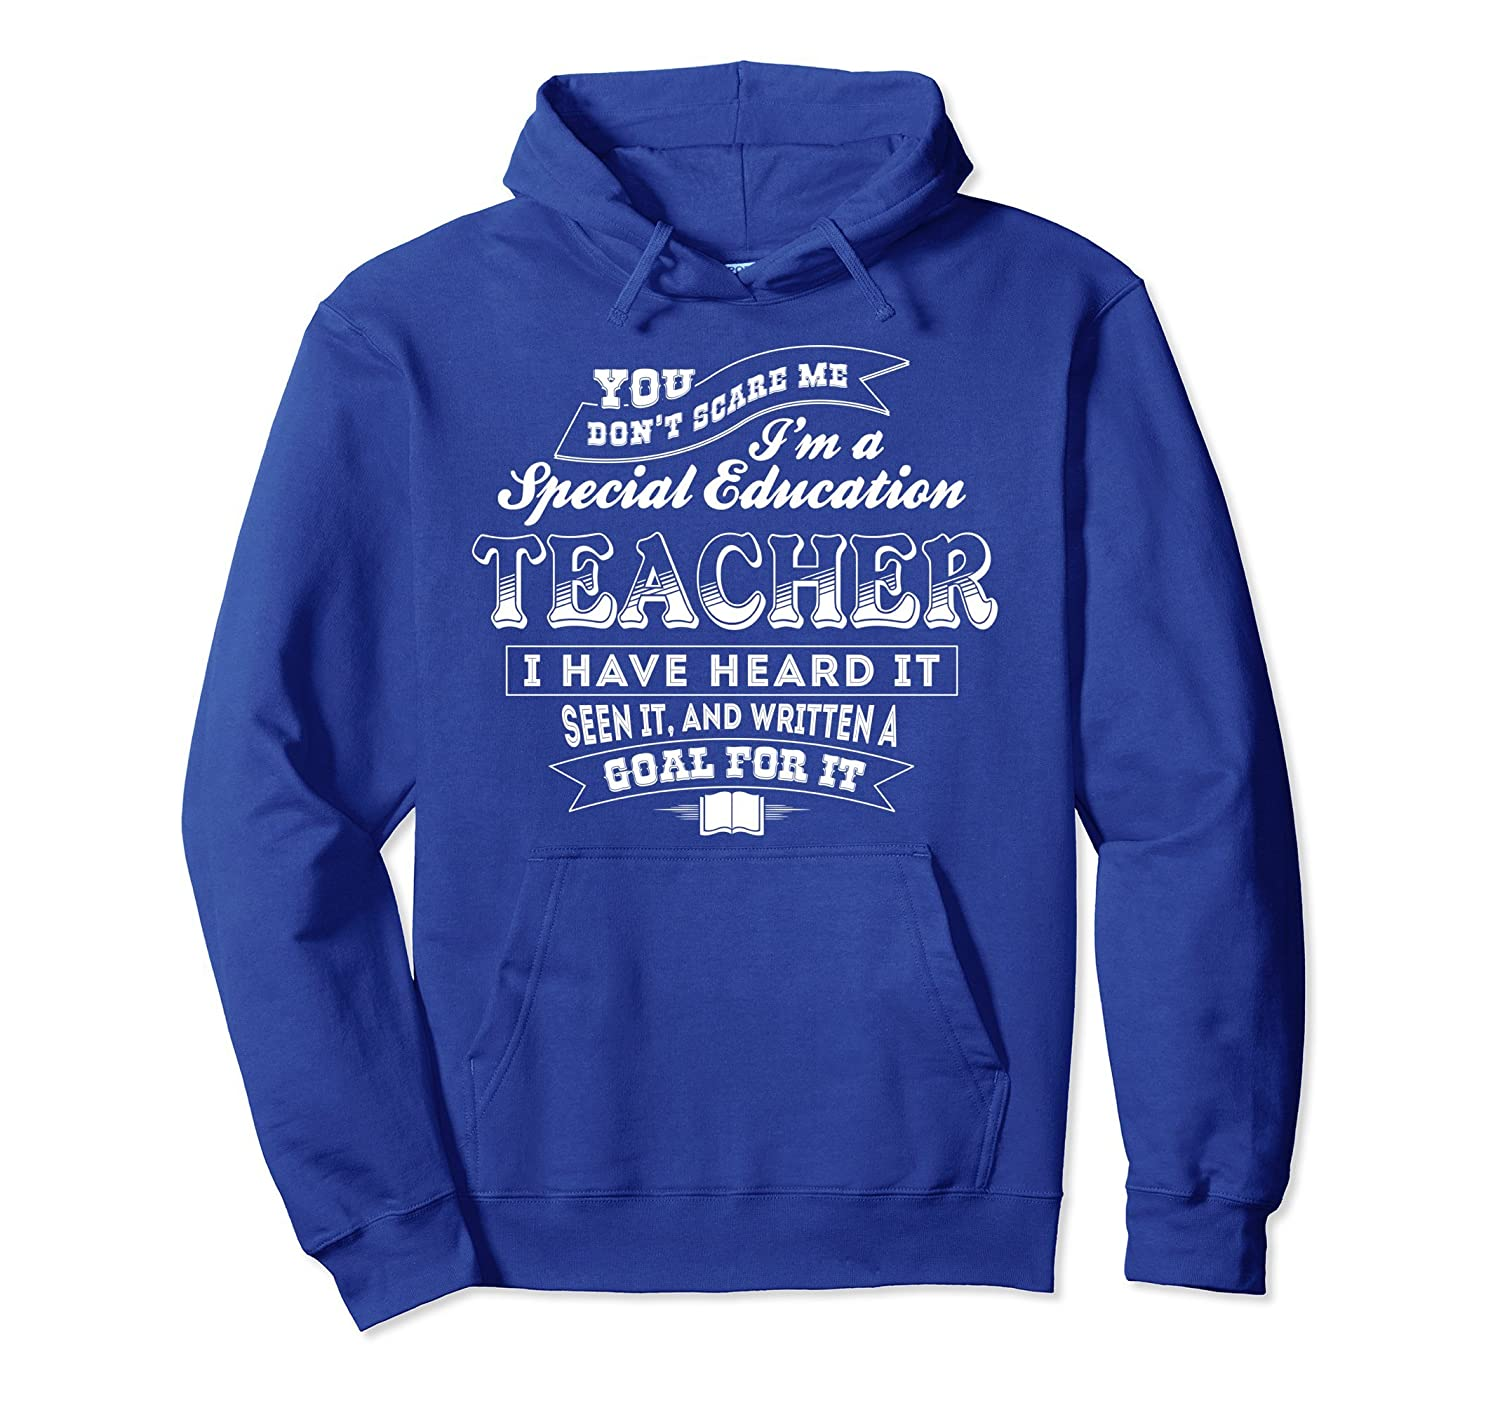 Special Education Hoodie Don't Scare Me Written Goal For It-ah my shirt one gift